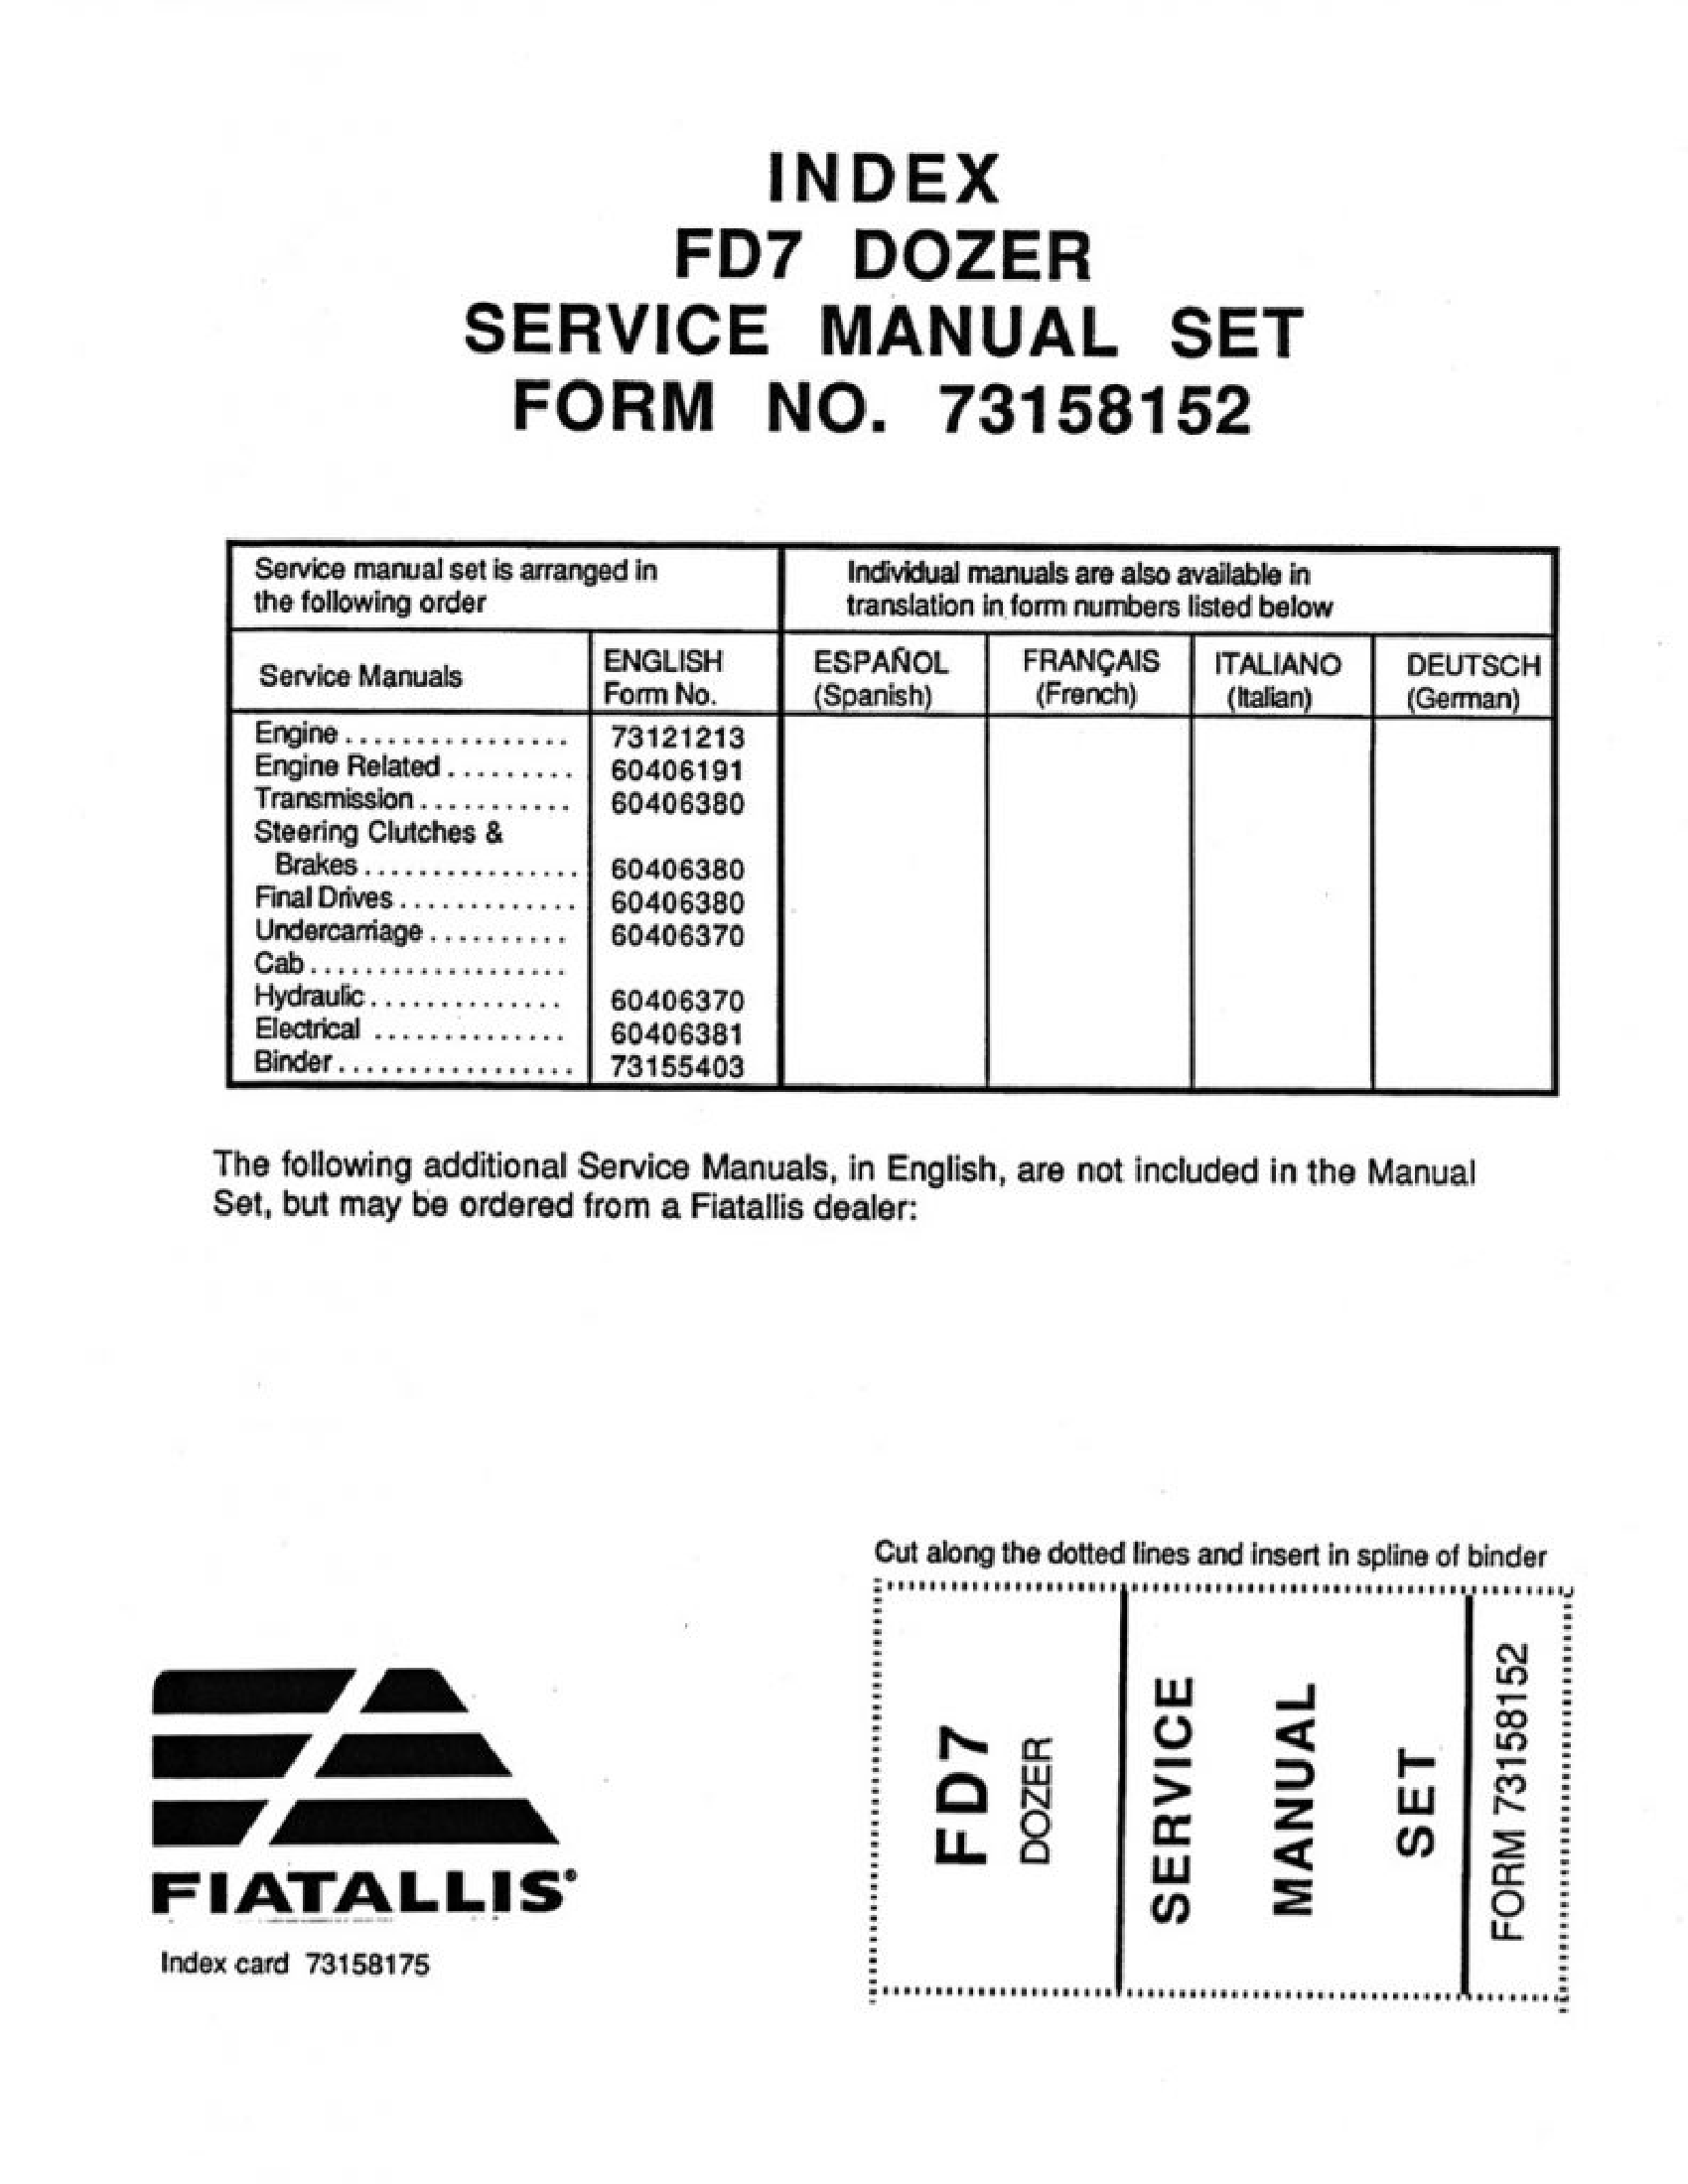 Fiat-Allis FD7 Dozer manual